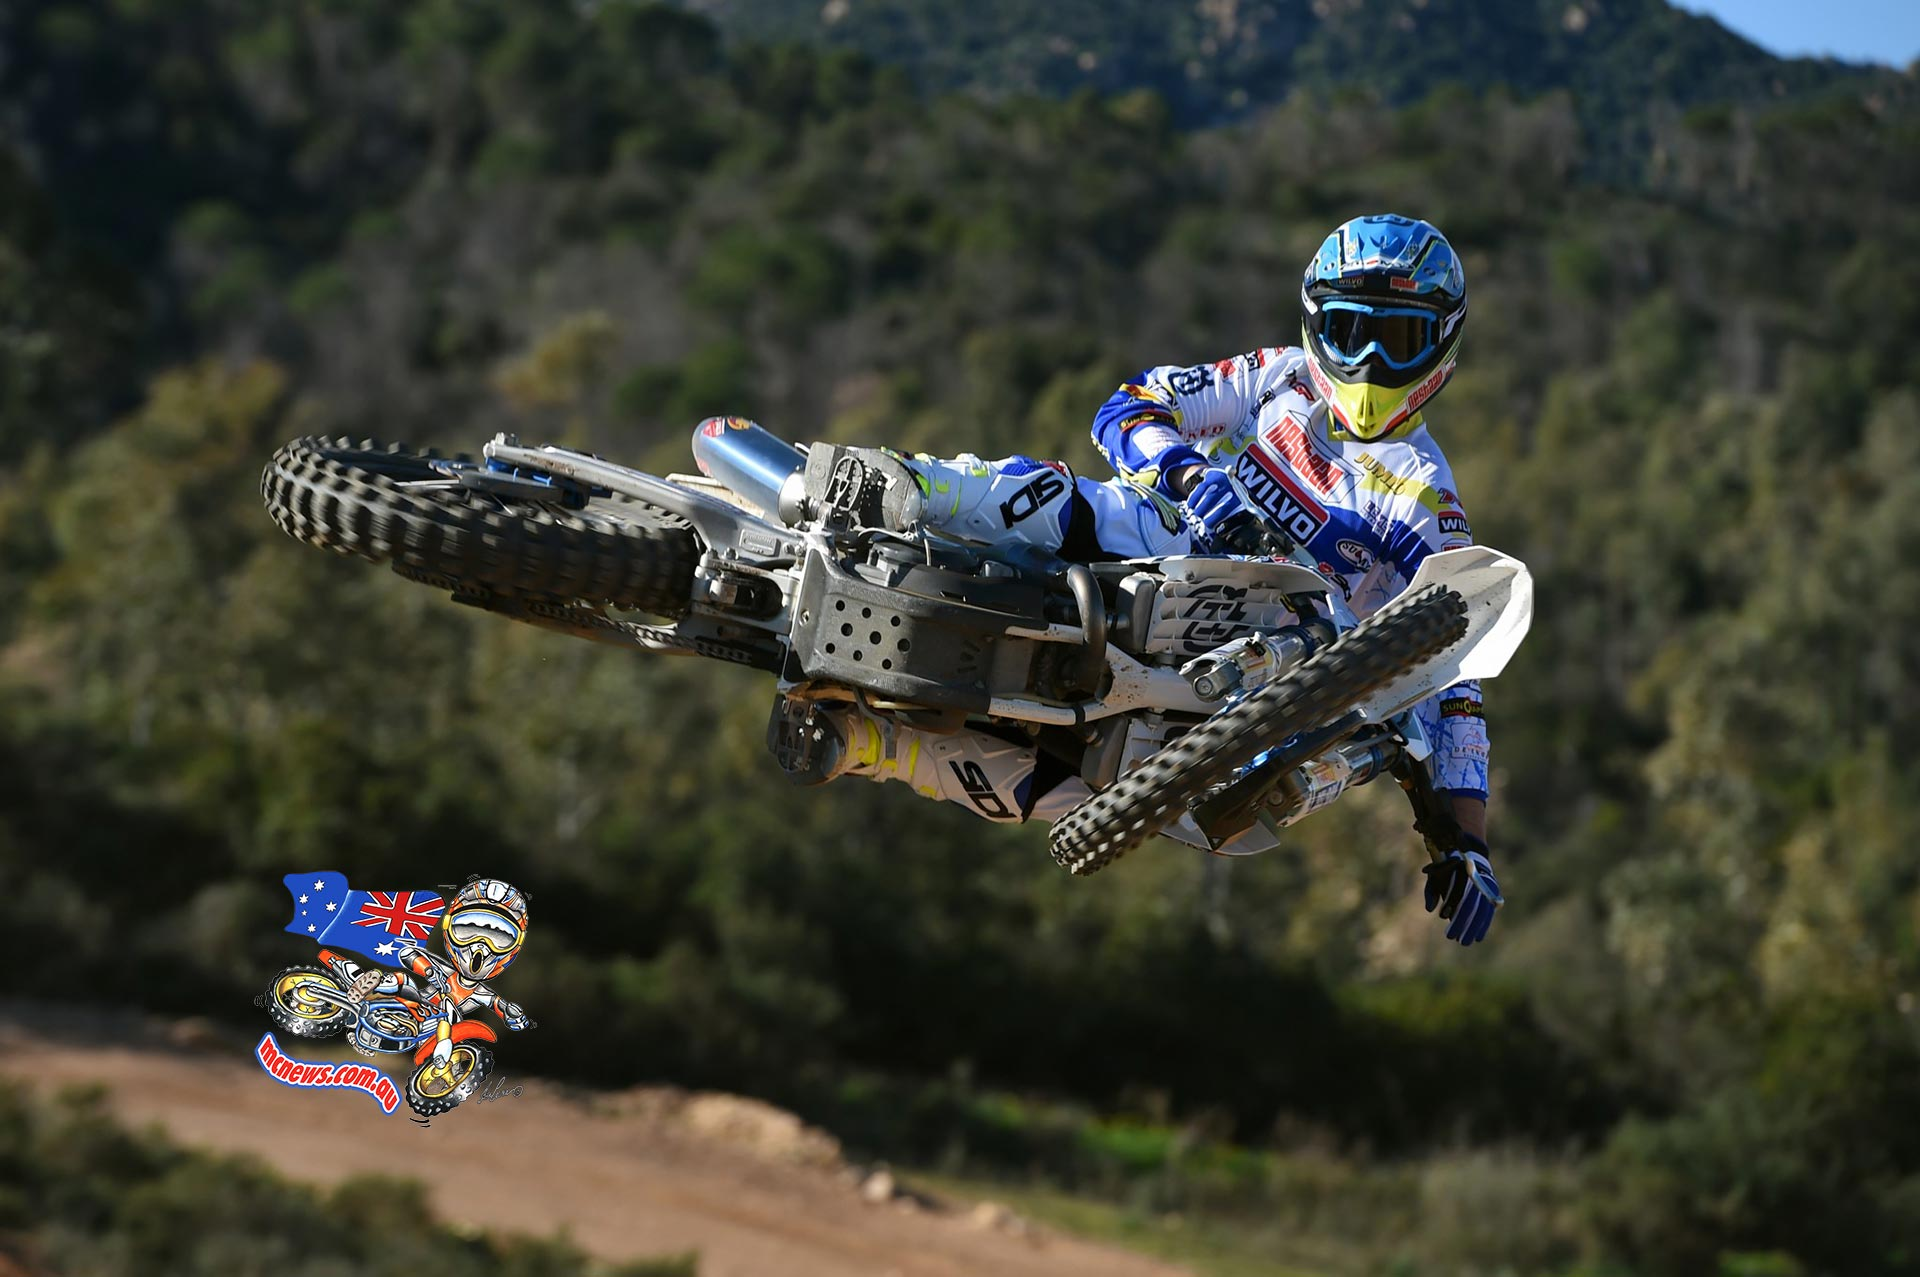 Australian Dean Ferris will race the MXGP class on a Husqvarna FC 350